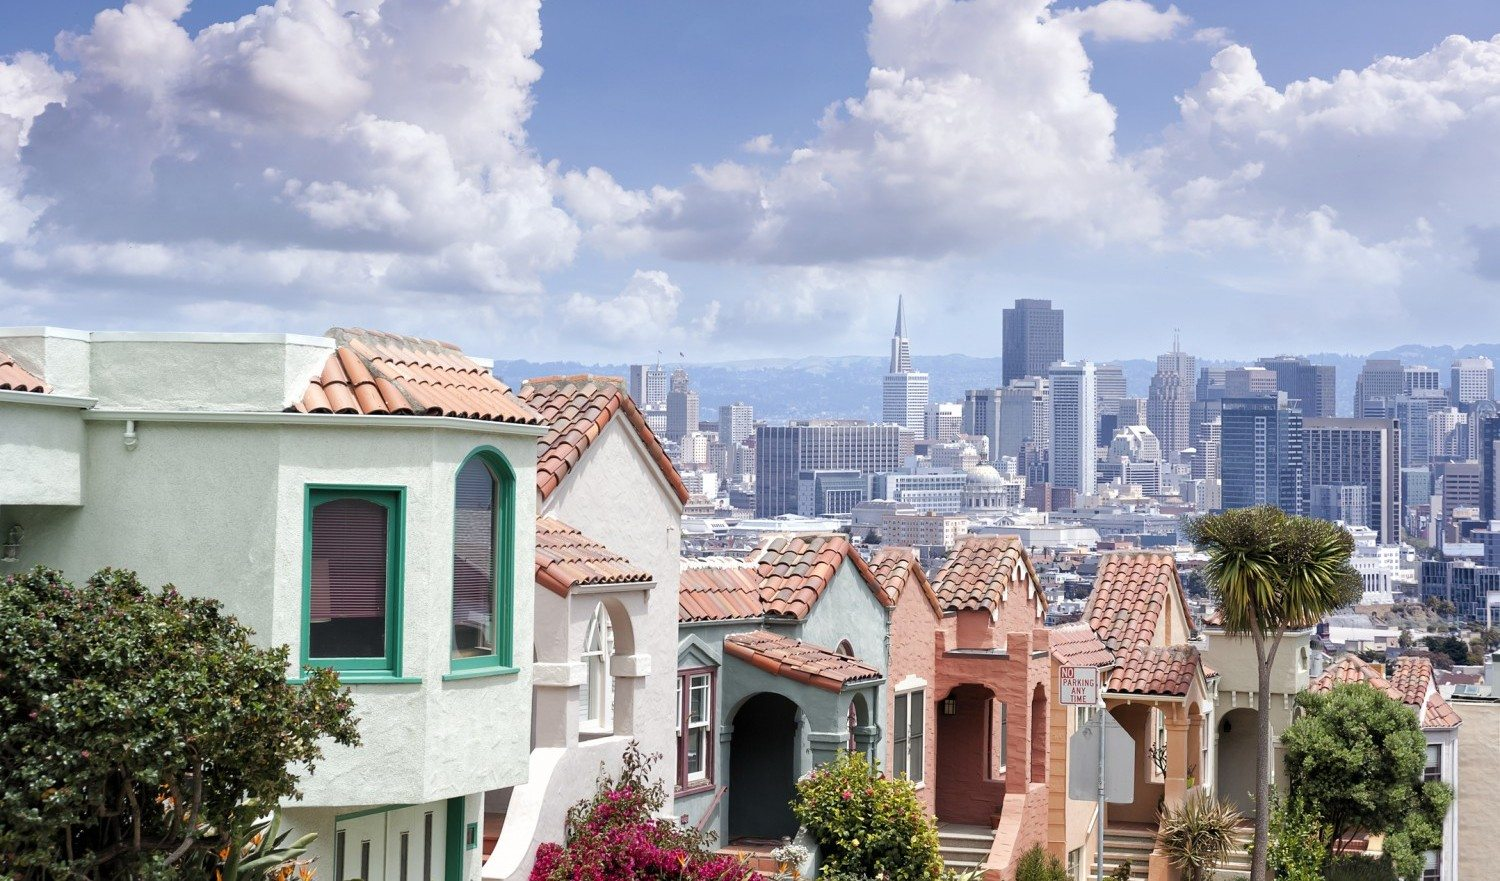 Panoramic view of San Francisco from Twin Peaks hills with typical houses, sanny day in California